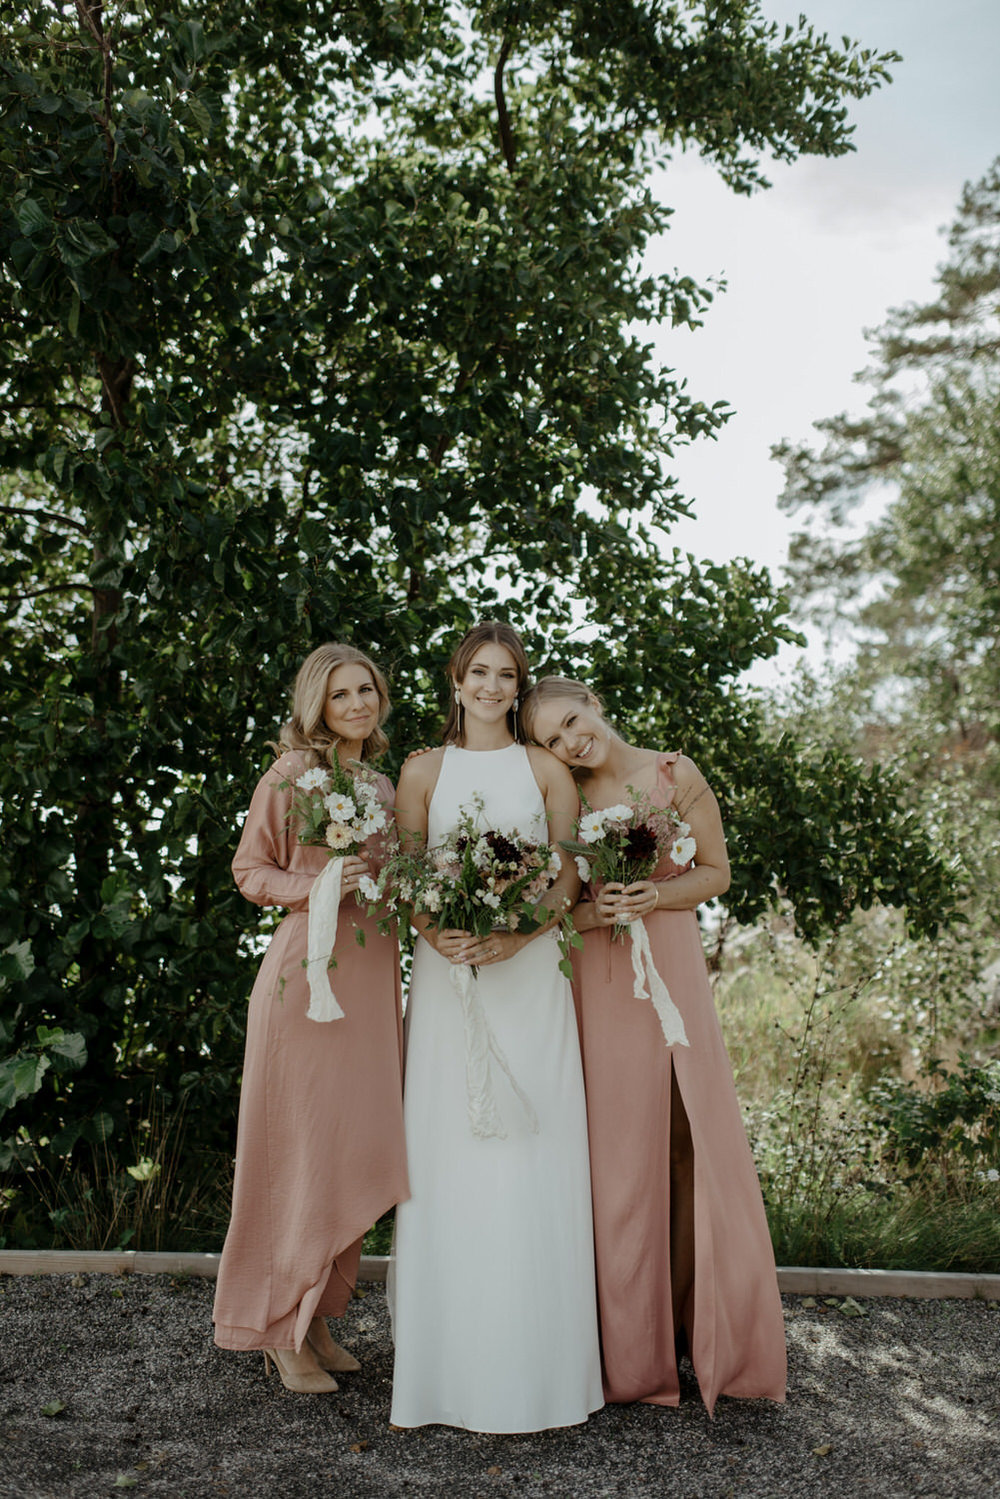 BHLDN Iva Crepe Maxi wedding dress, pink bridesmaids dresses and flowers by VeloBloom.